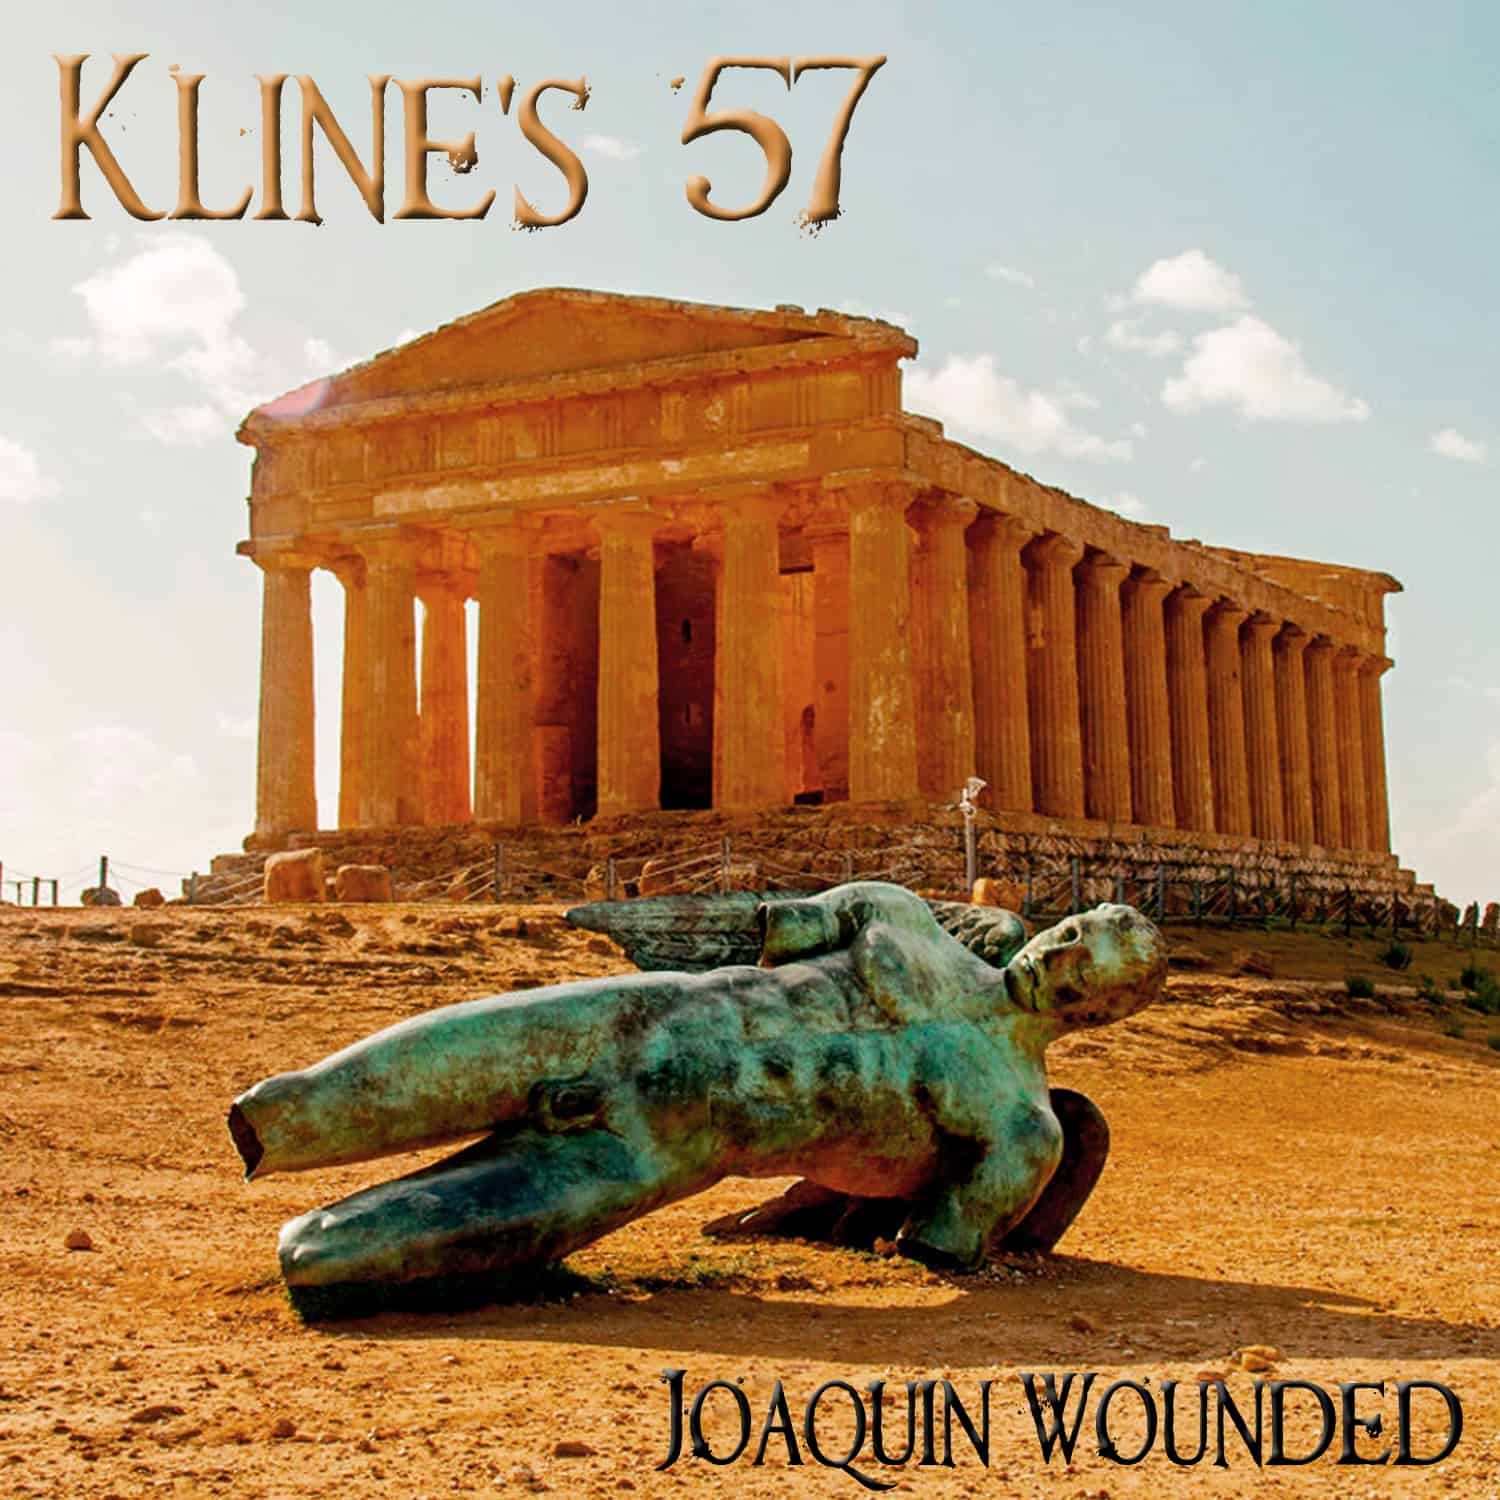 Kline's 57 - Joaquin Wounded cover